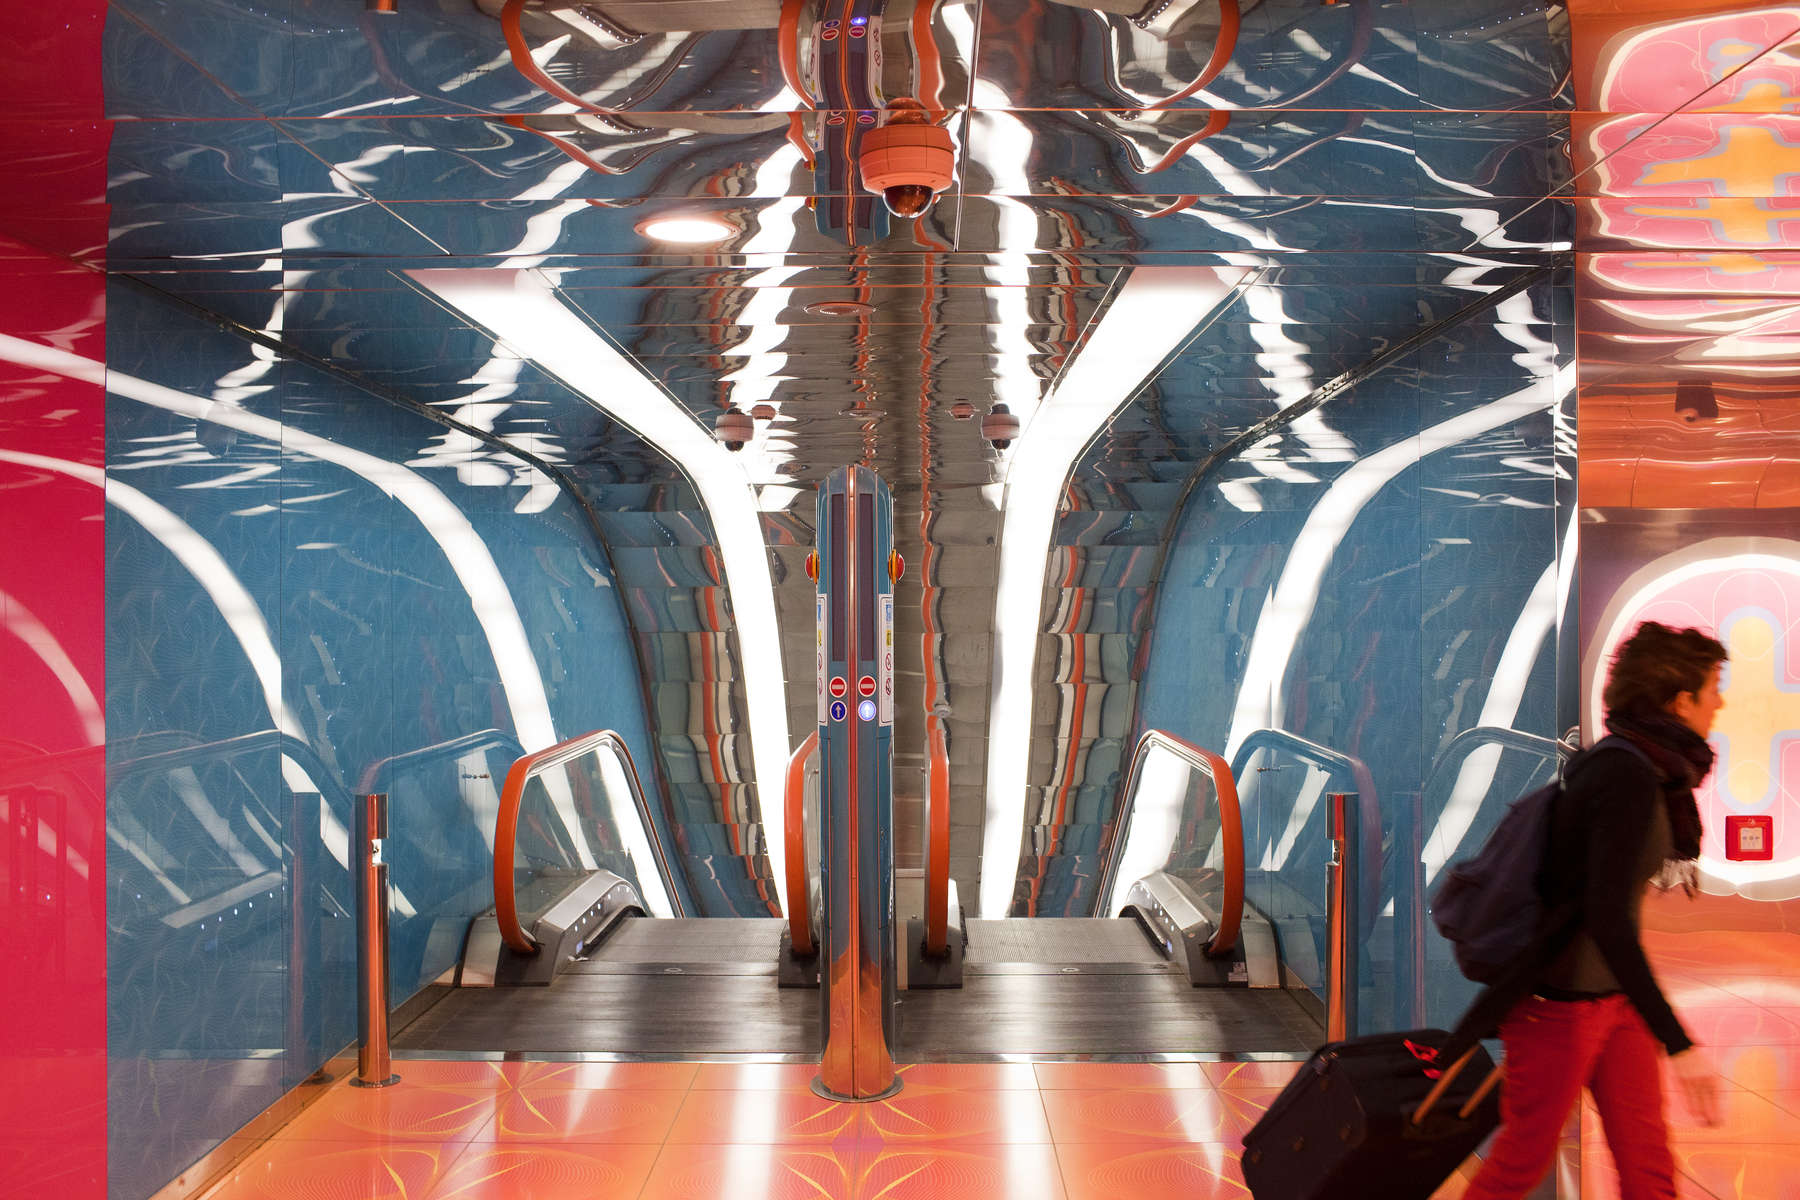 The very modern University of Naples subway station. Naples is a city on the west coast in Southern Italy and is the capital of the Campania region.+44(0)7711058090peter@peterdench.comPhotography ©Peter DenchCommissioned by:Dagmar Seeland, London OfficeHarald Menk, Hamburg Office